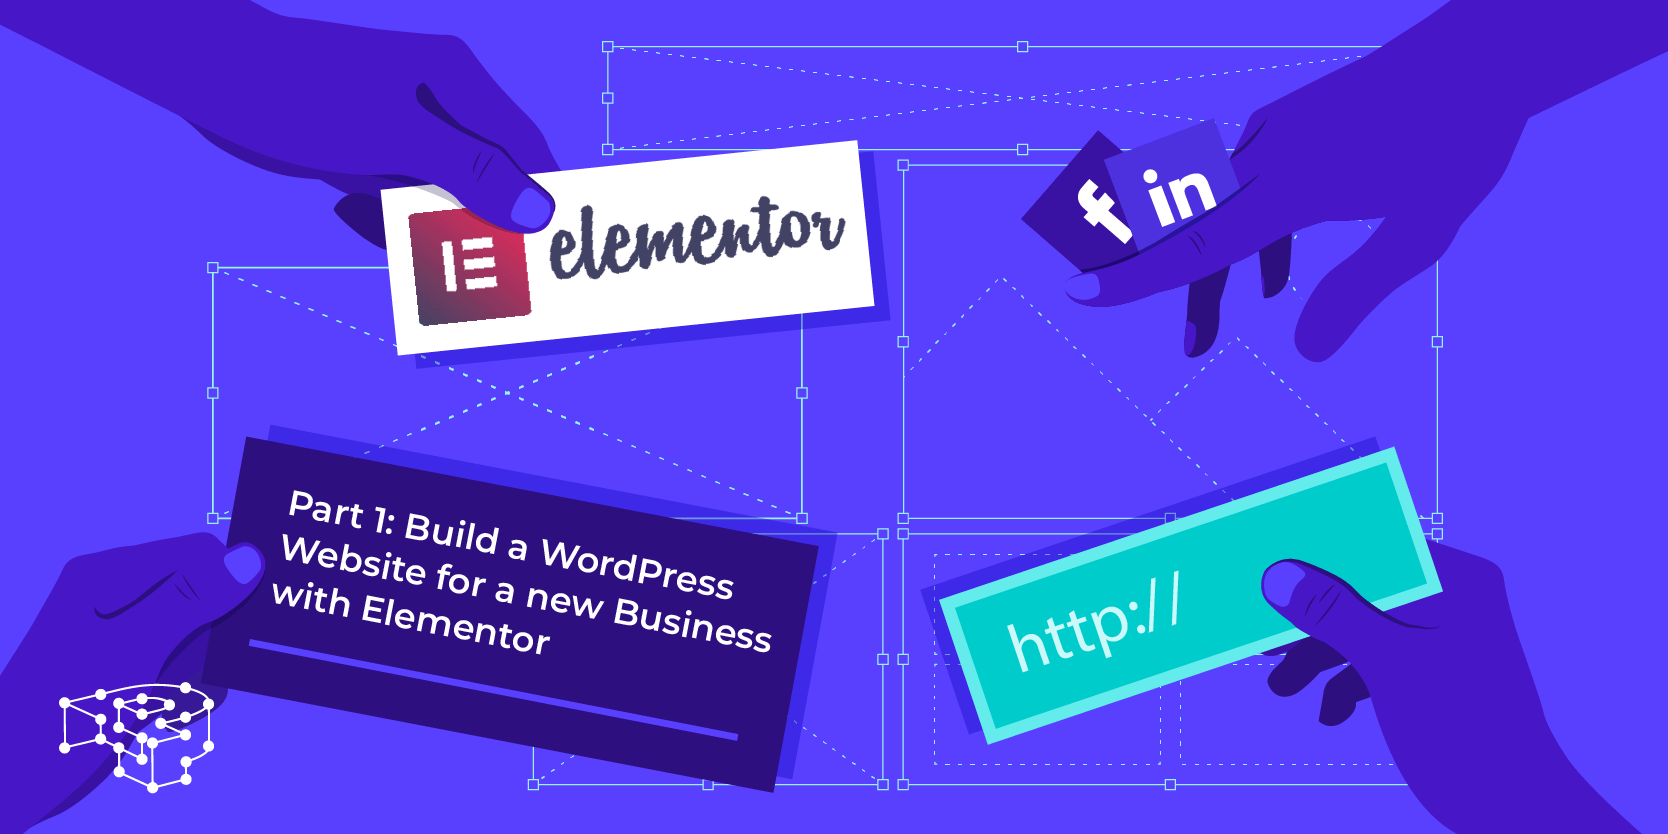 Image for Part 1: Build a WordPress Website for a new Business with Elementor